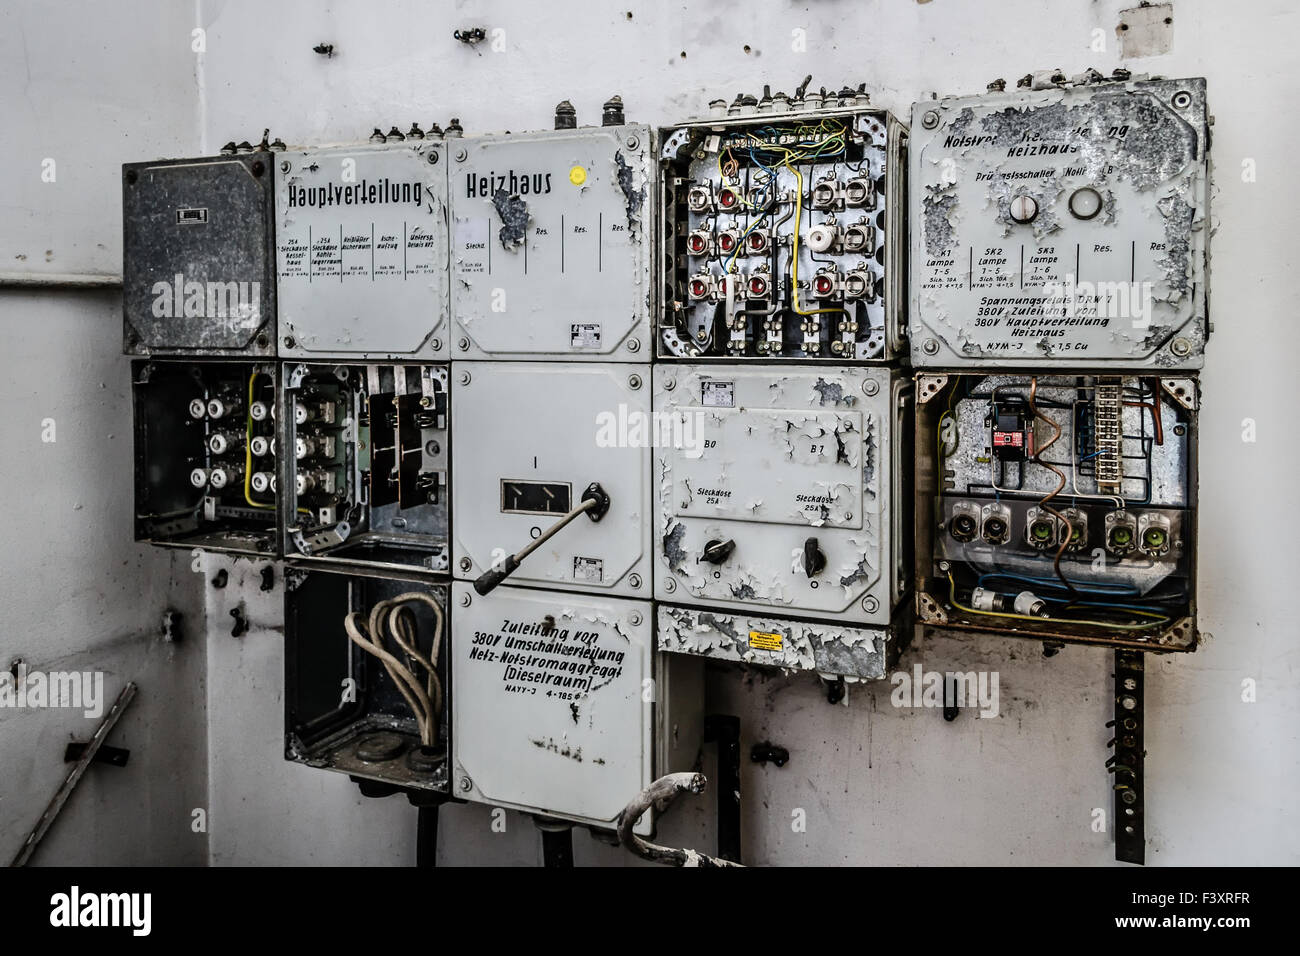 old fuse box stock photo 88485035 alamy rh alamy com old fuse box house old fuse box wiring